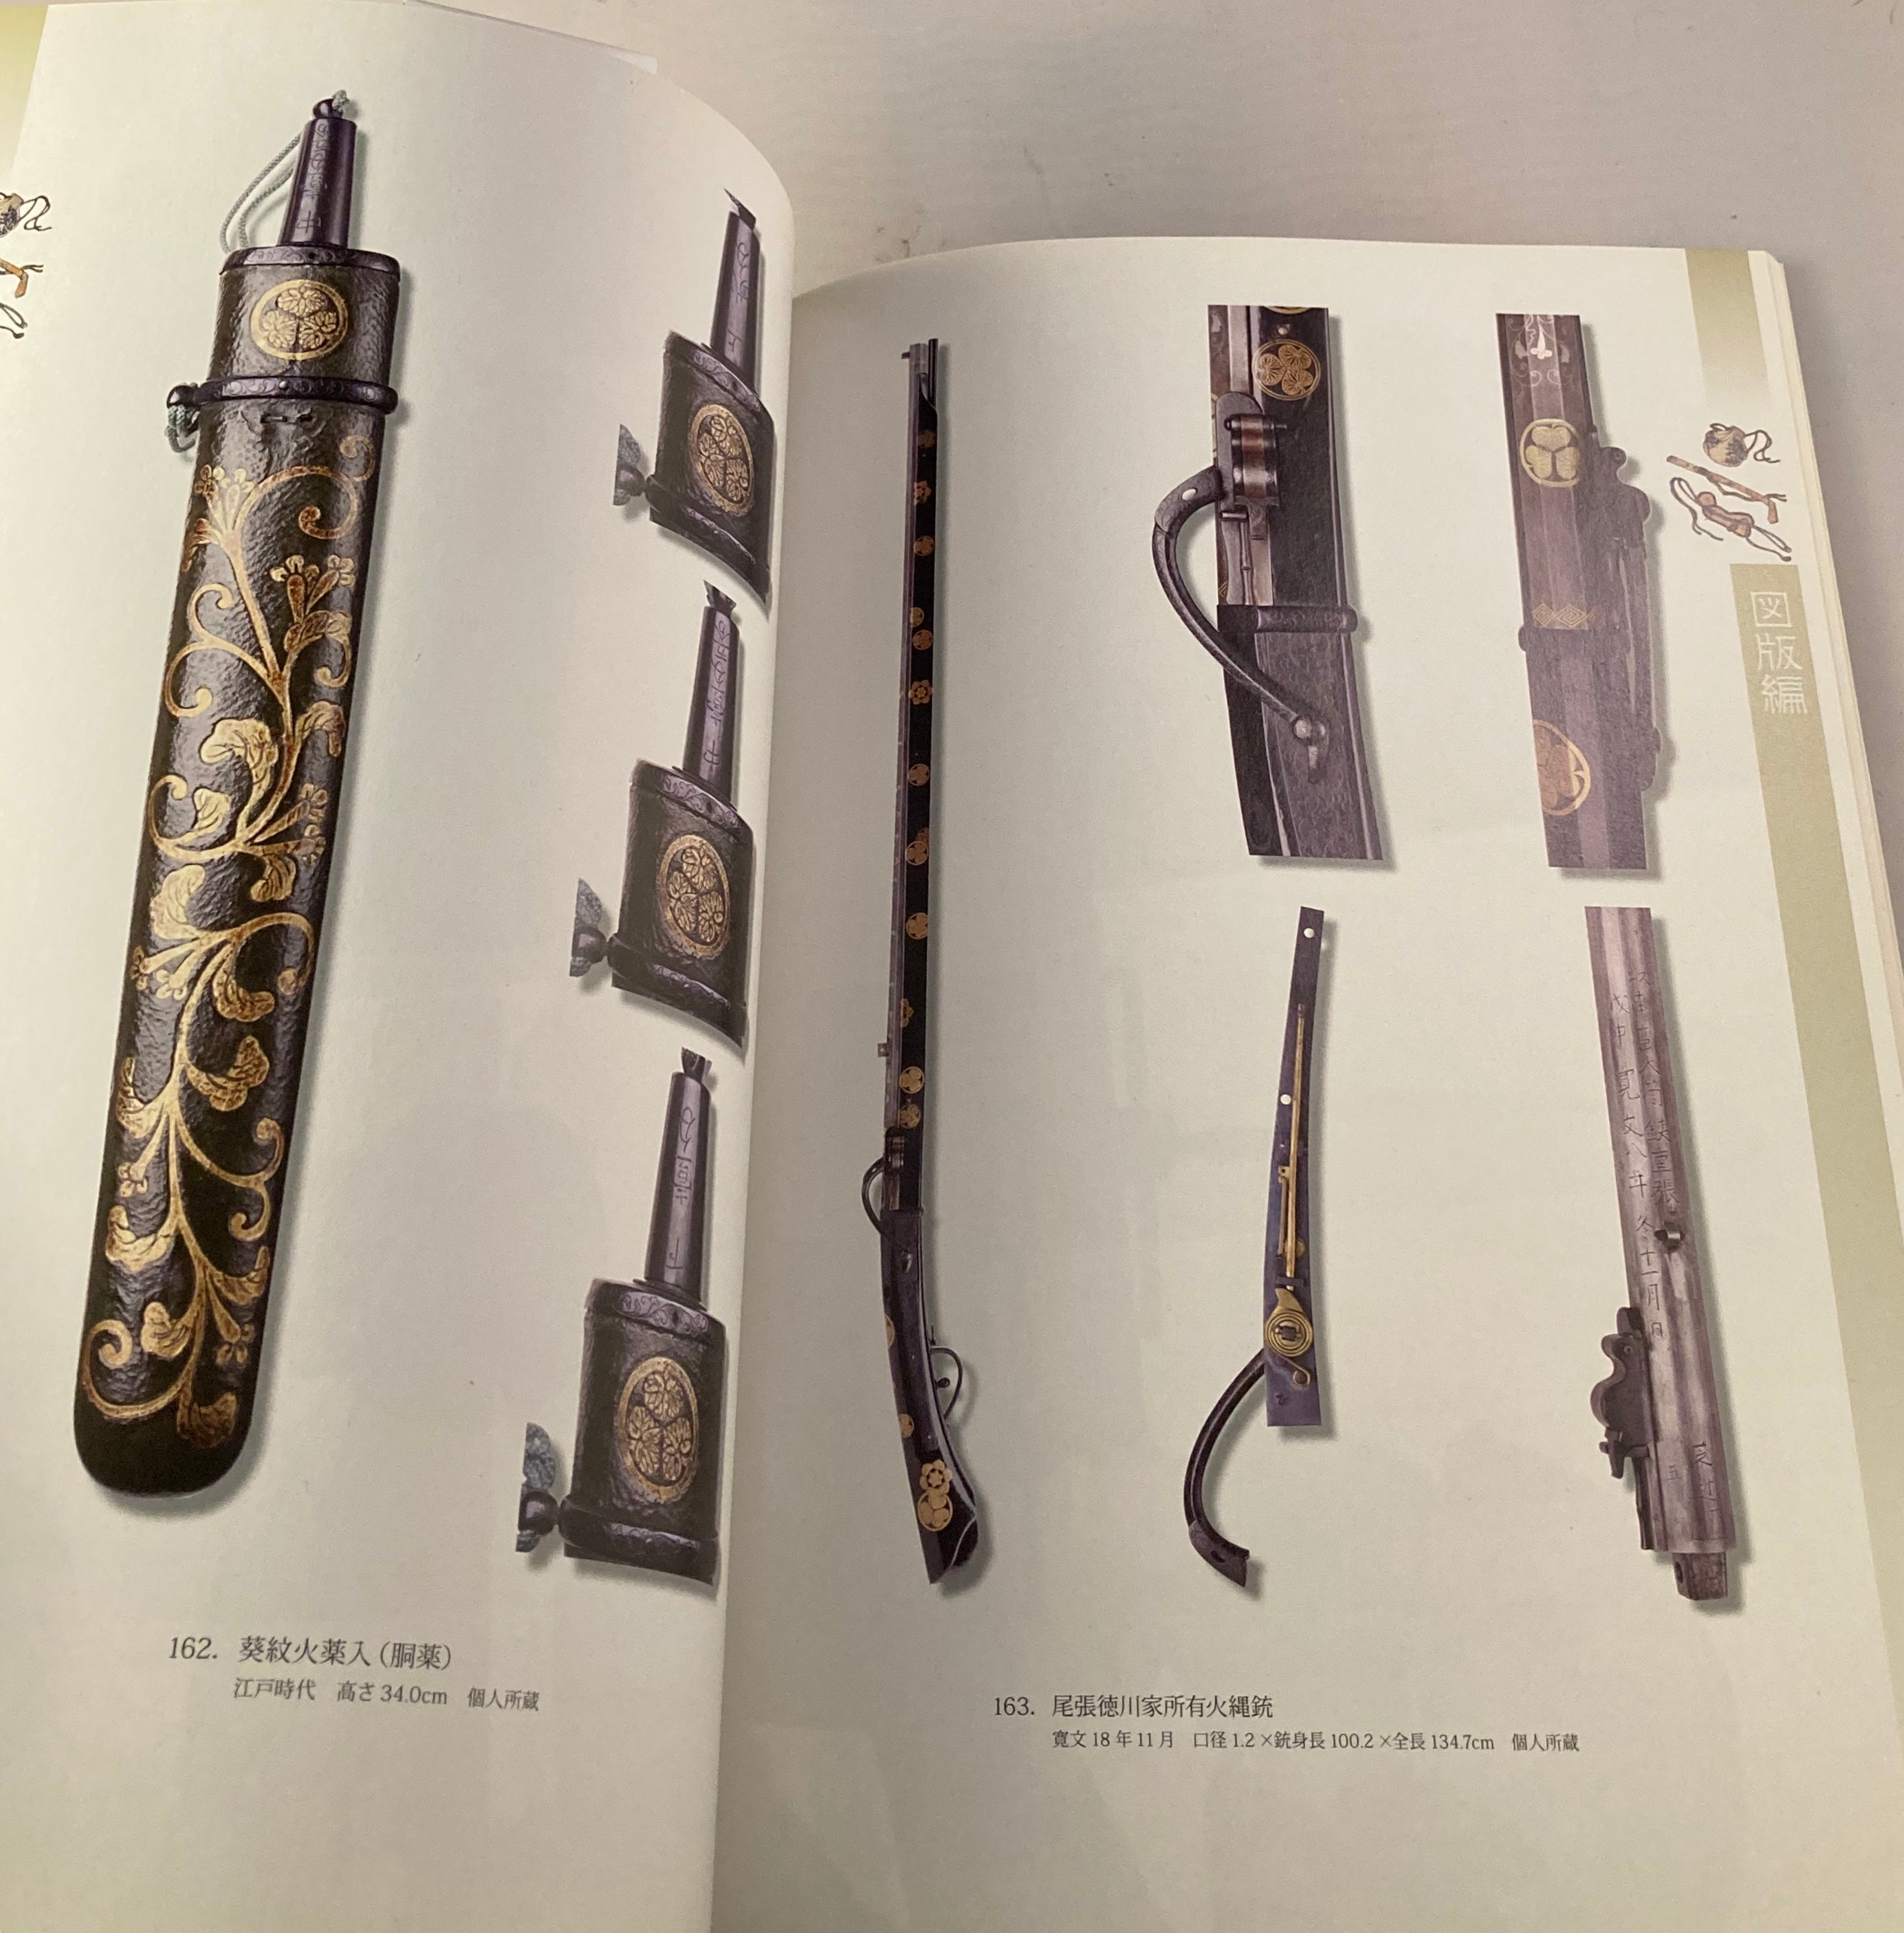 Matchlocks and accessories. - Yamazakura